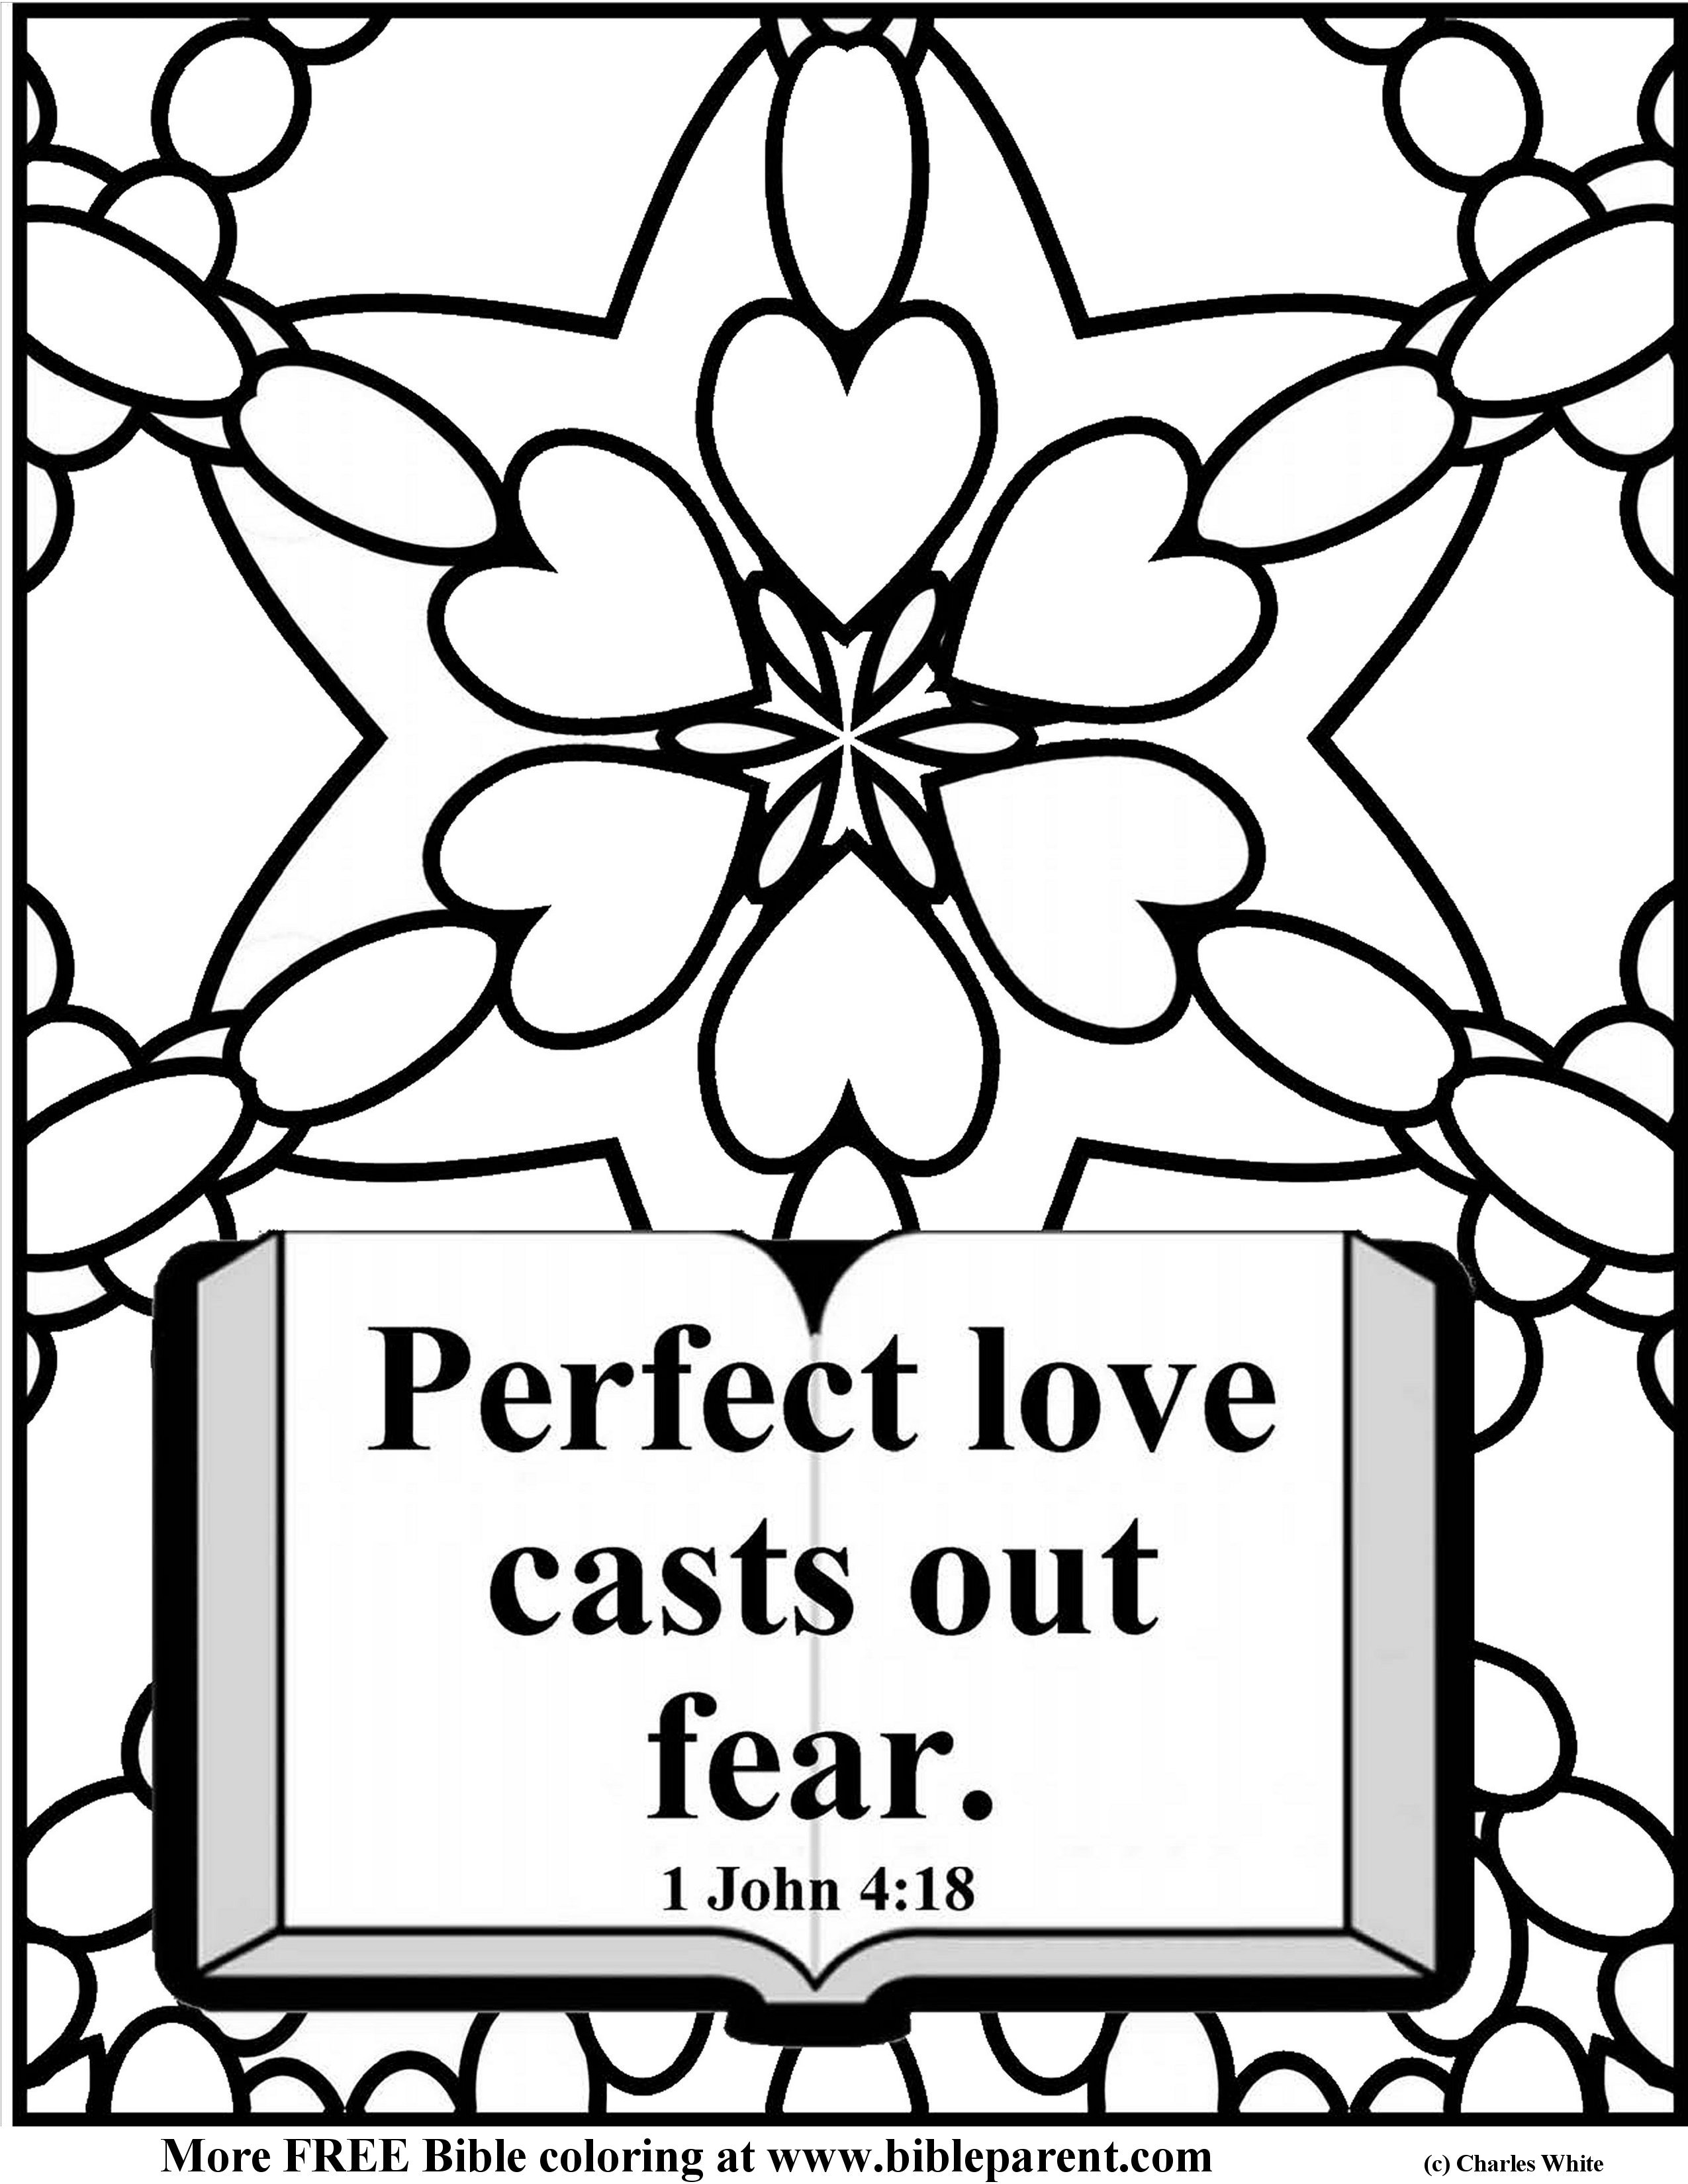 Free Bible coloring pages about love, vbs craft ideas